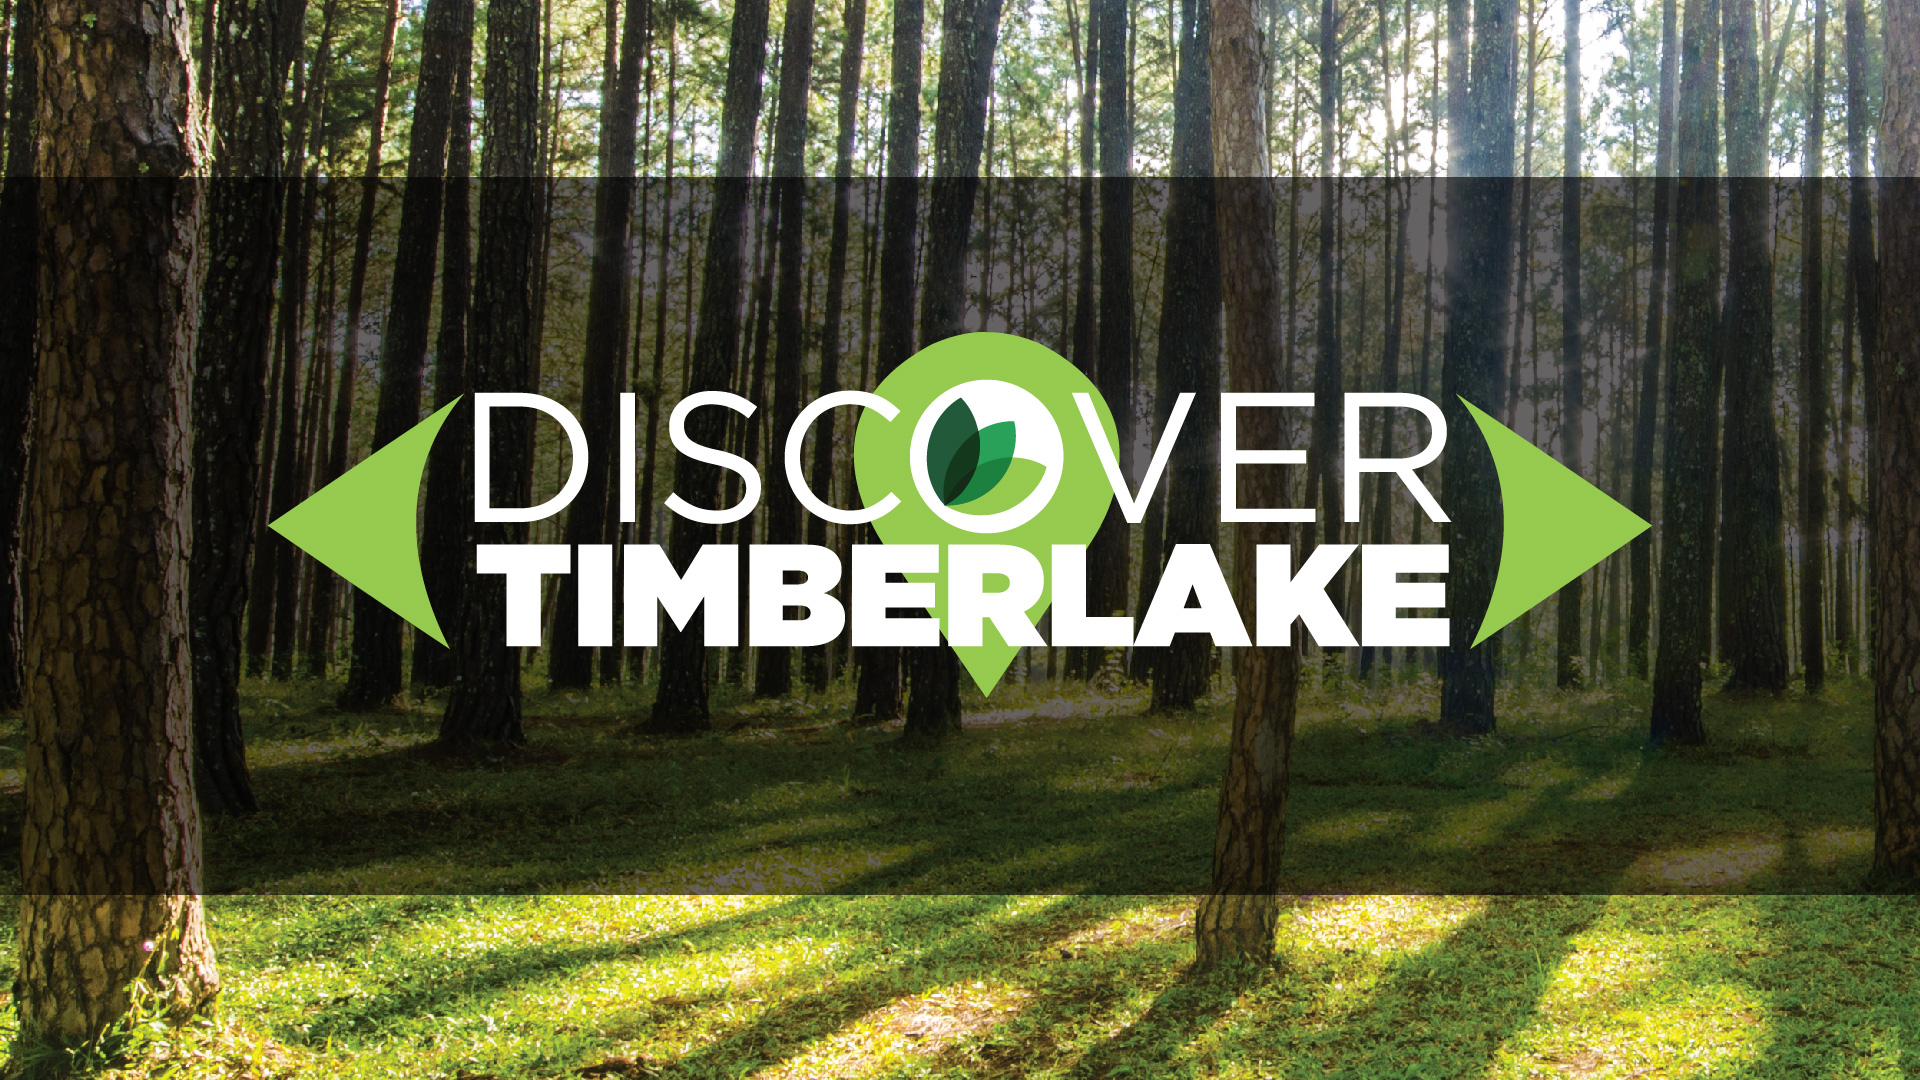 Discover Timberlake no info 1920x1080-01